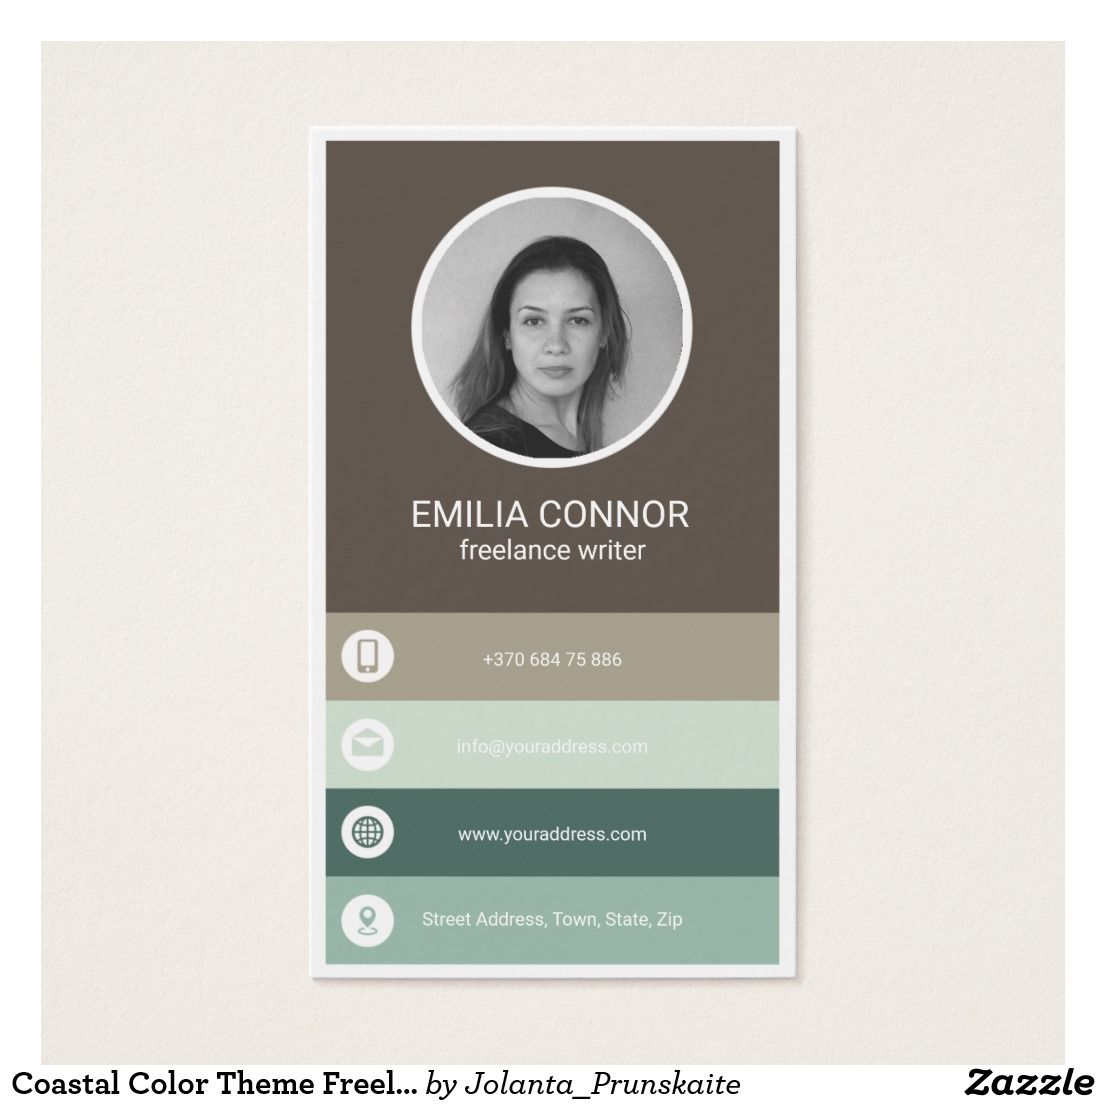 Coastal Color Theme Freelance Writer Business Card | Business ...